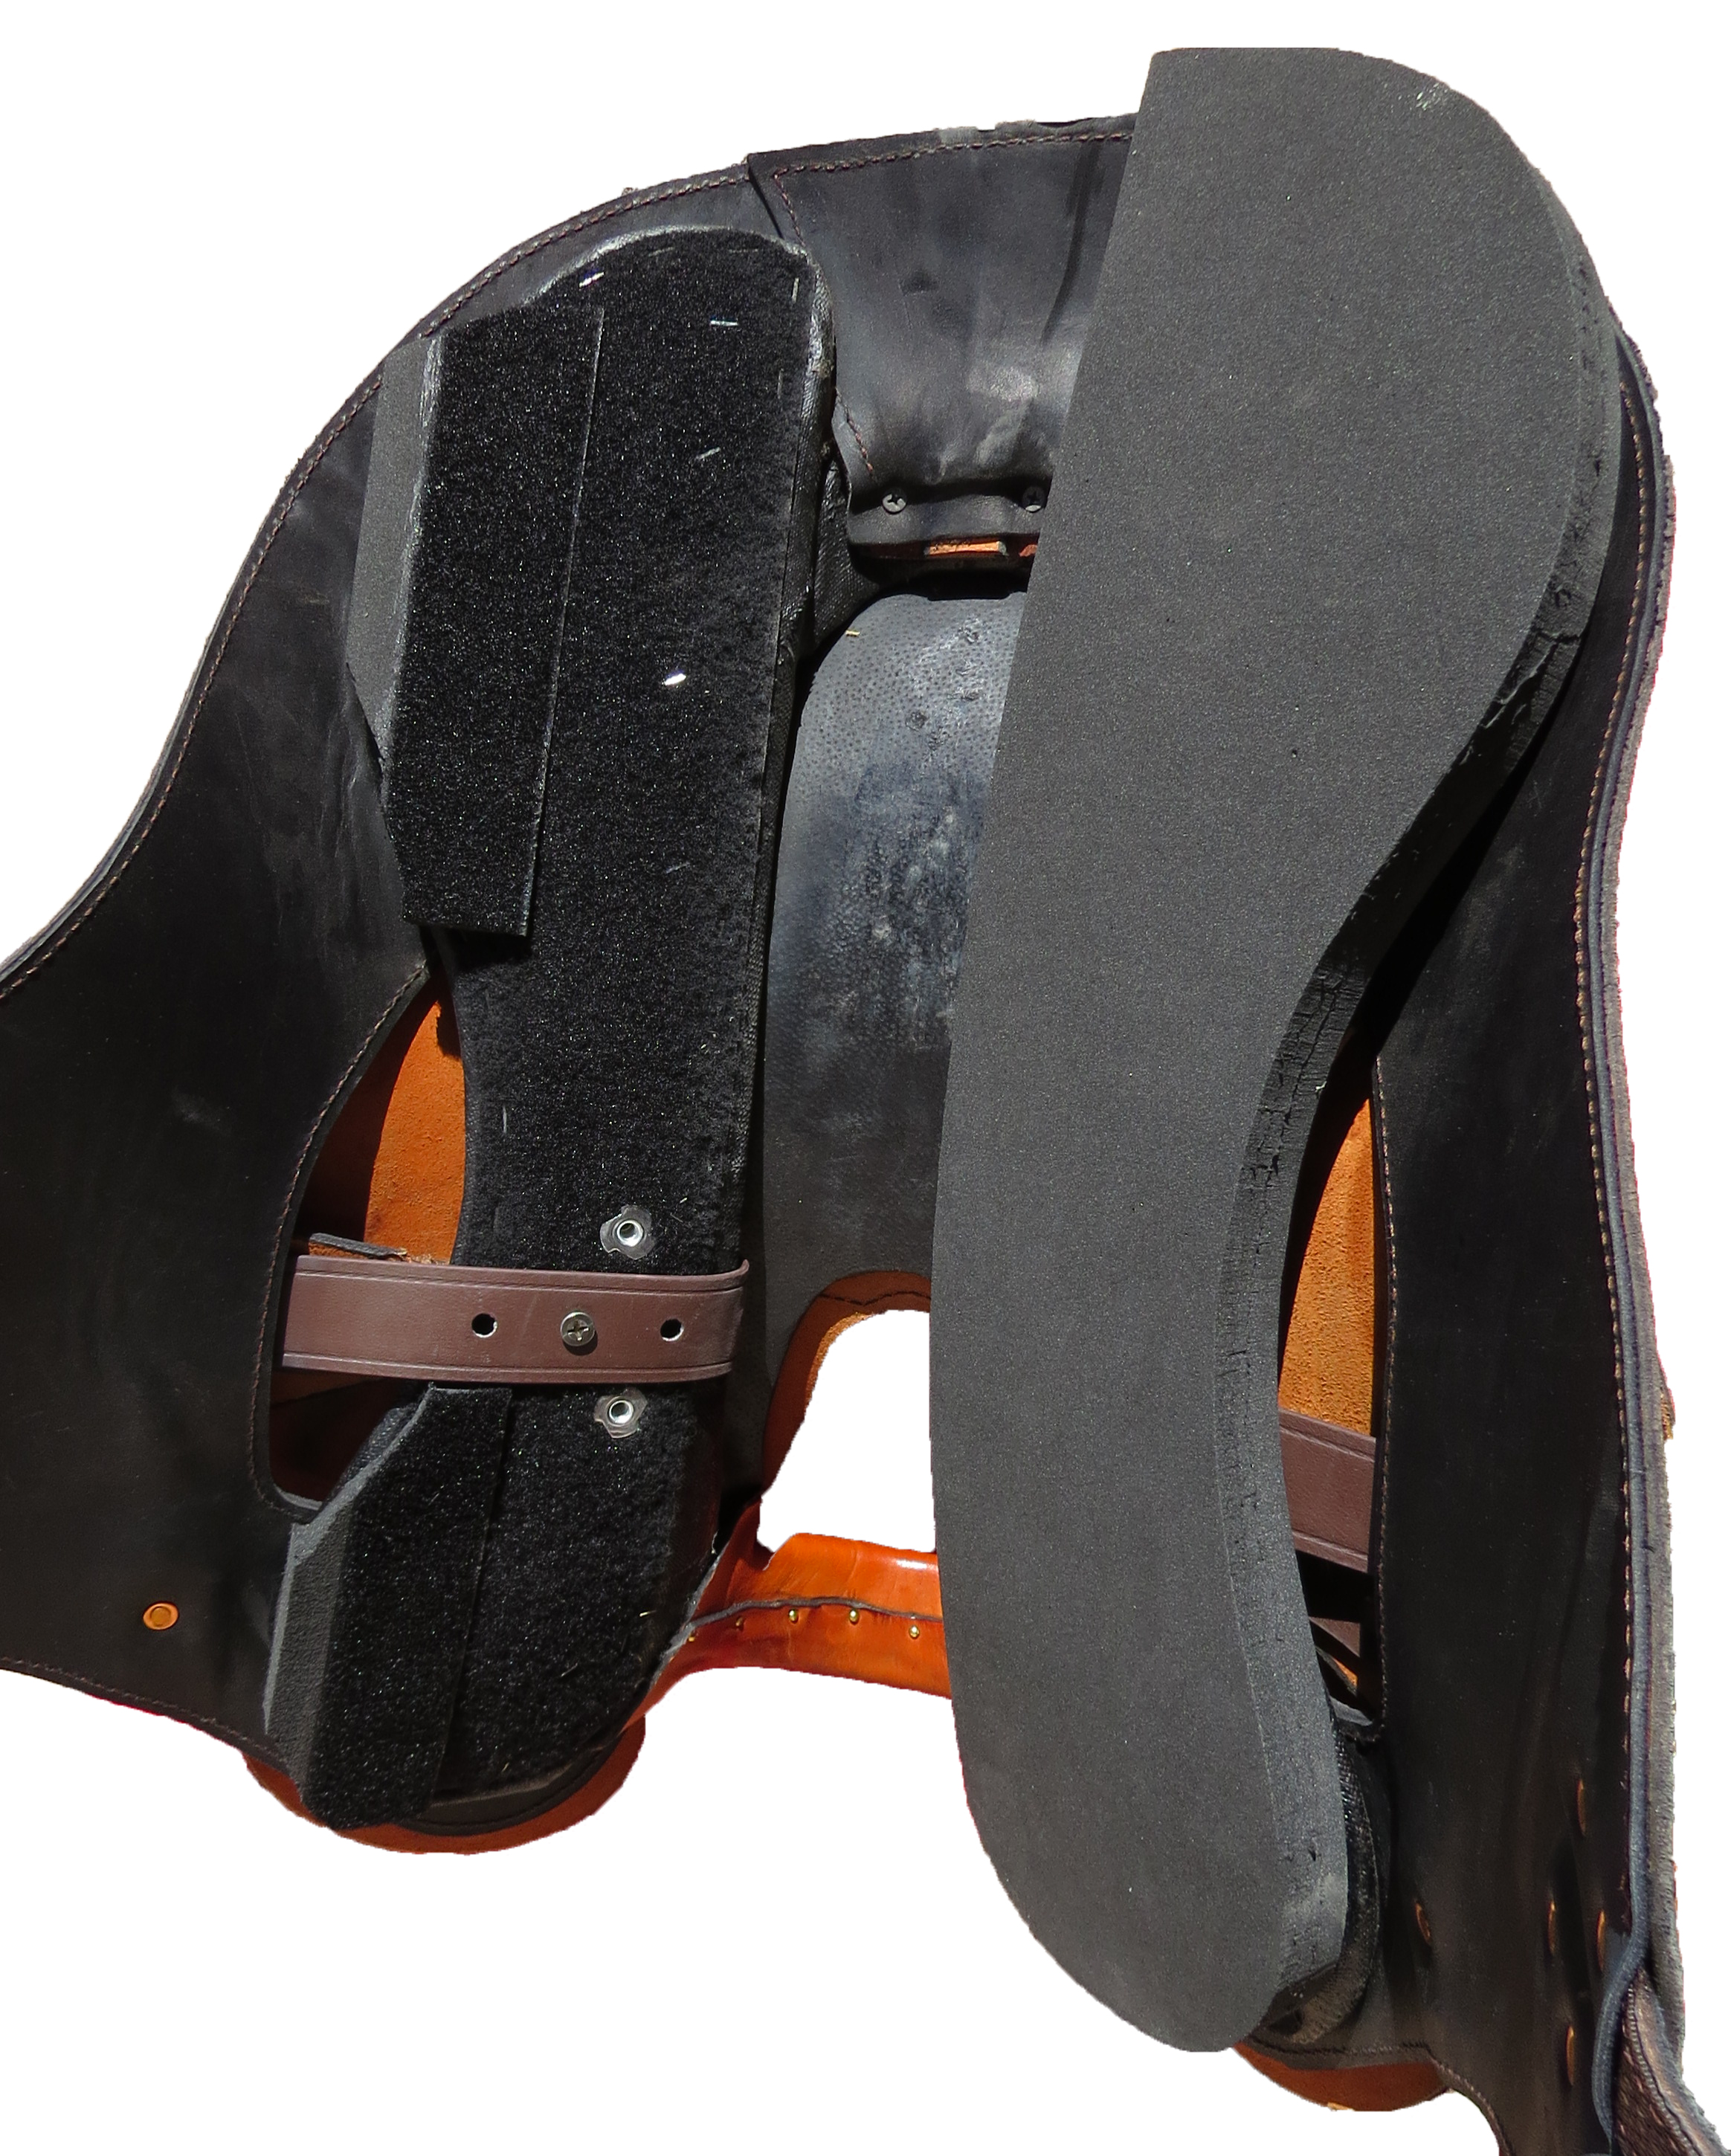 3-D Saddle Fitting System - Underside